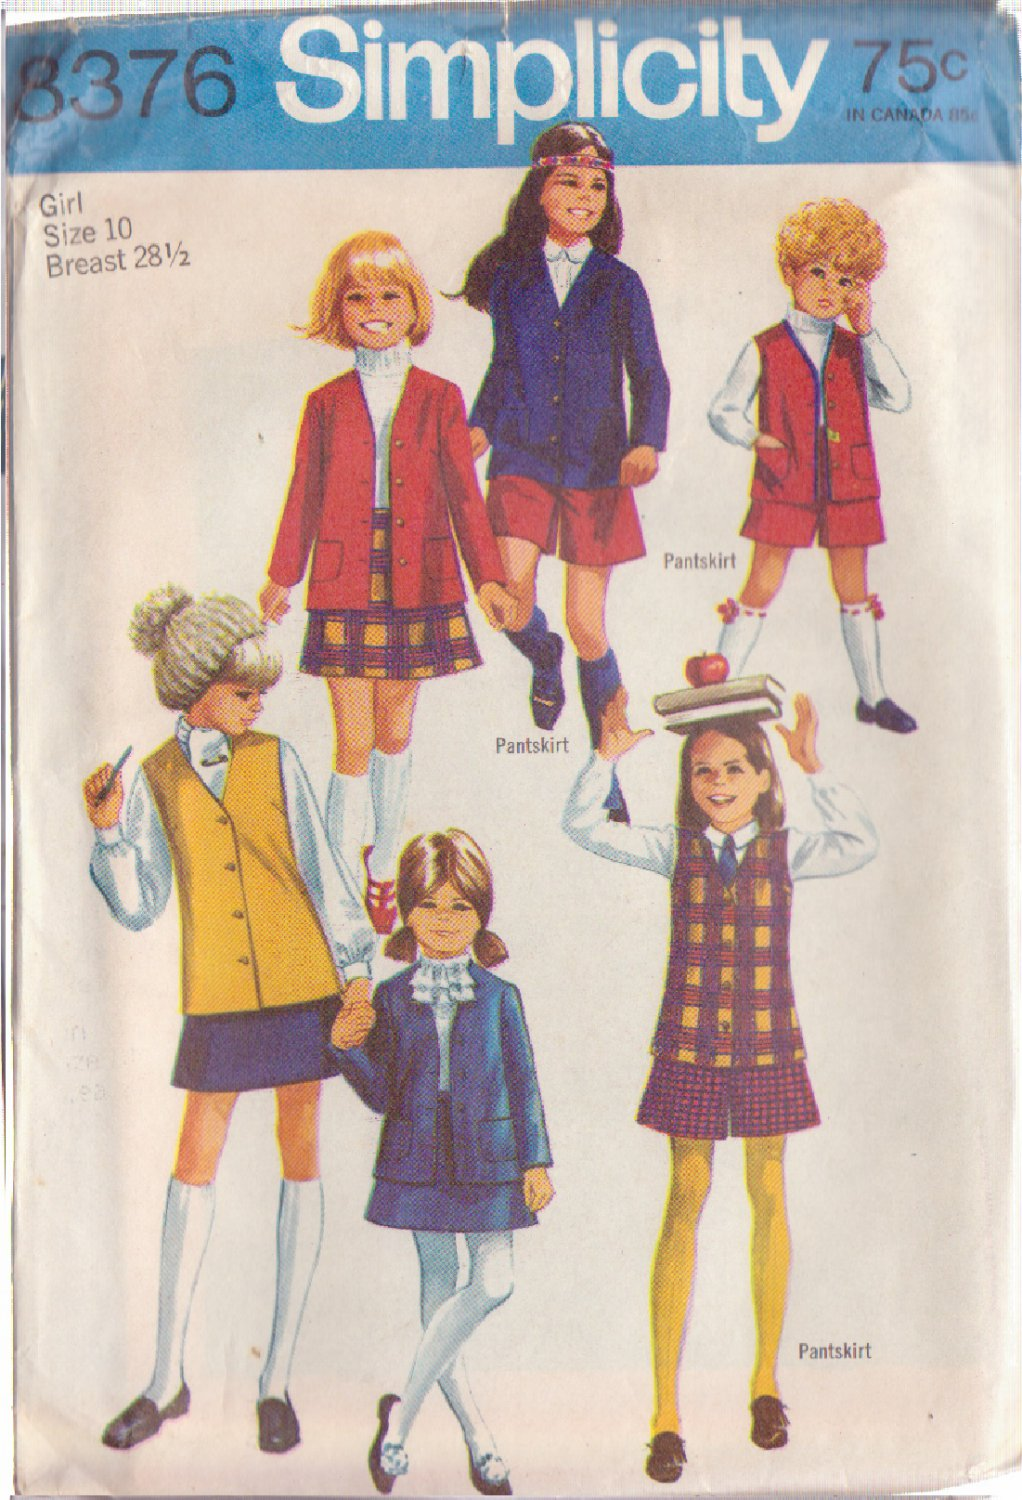 SIMPLICITY VINTAGE PATTERN 8376 CHILD'S JACKET, VEST, SKIRT, PANTSKIRT SIZE 10